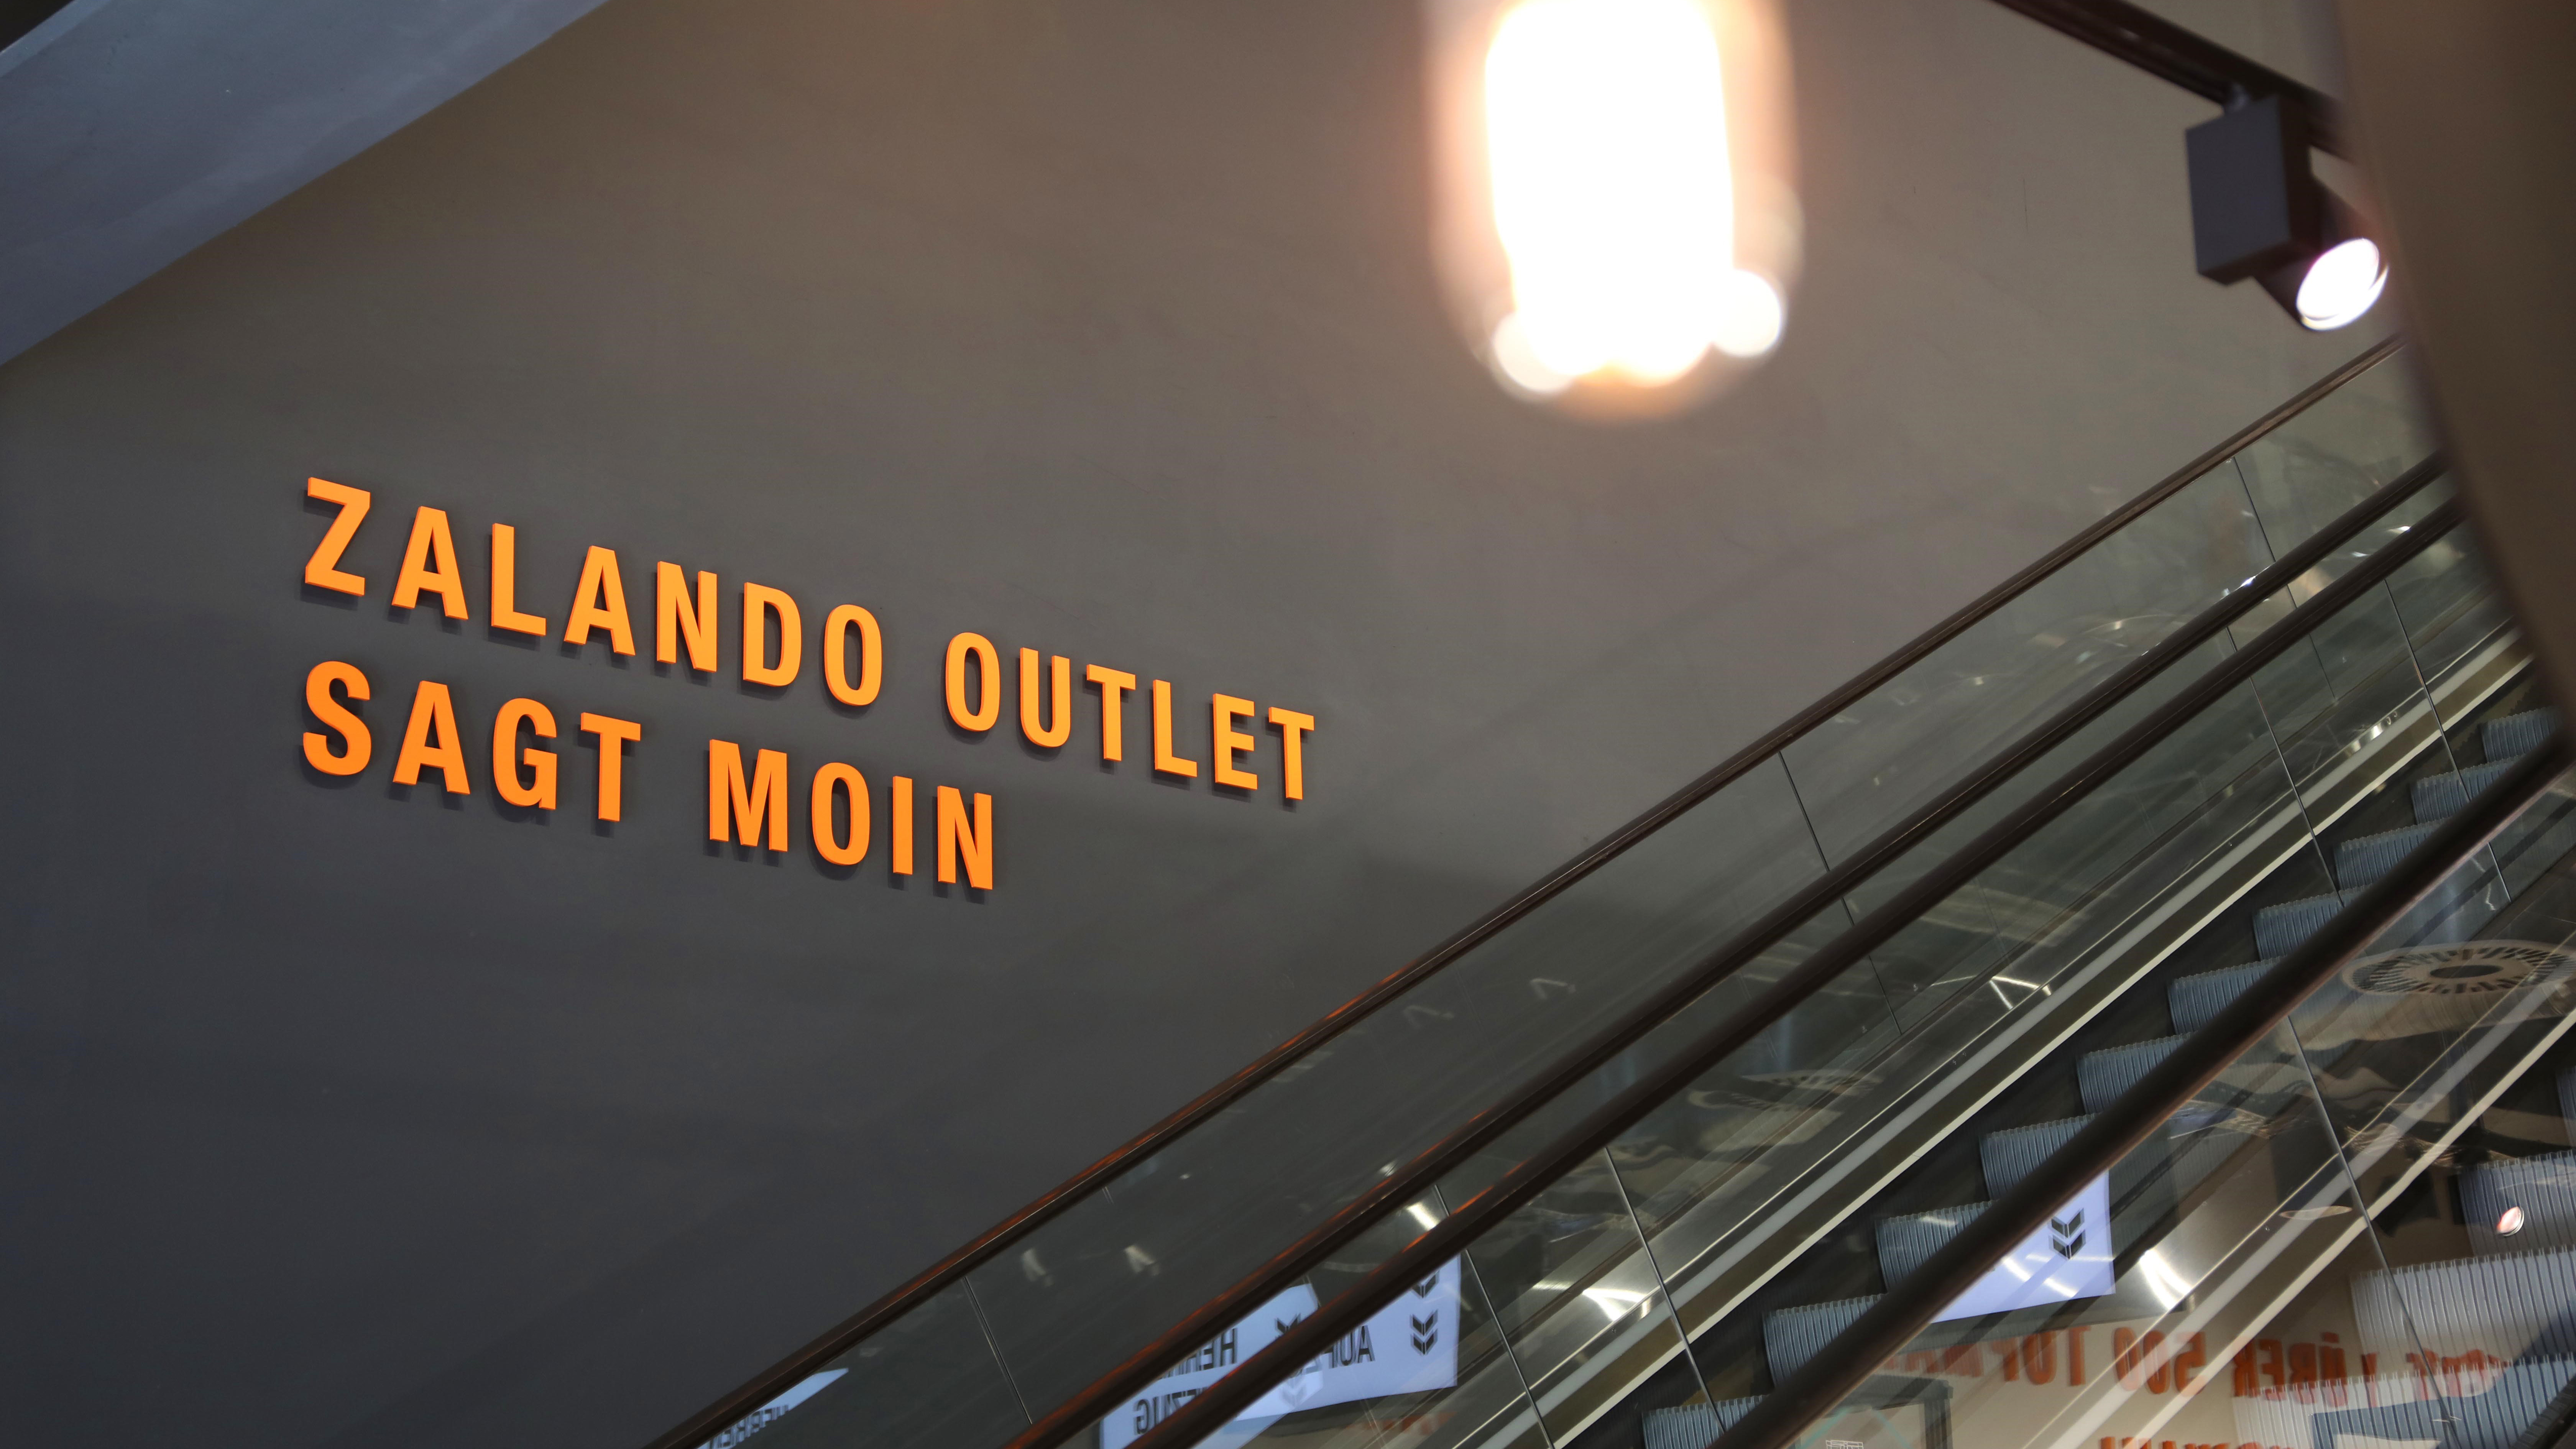 Zalando Outlet Hamburg